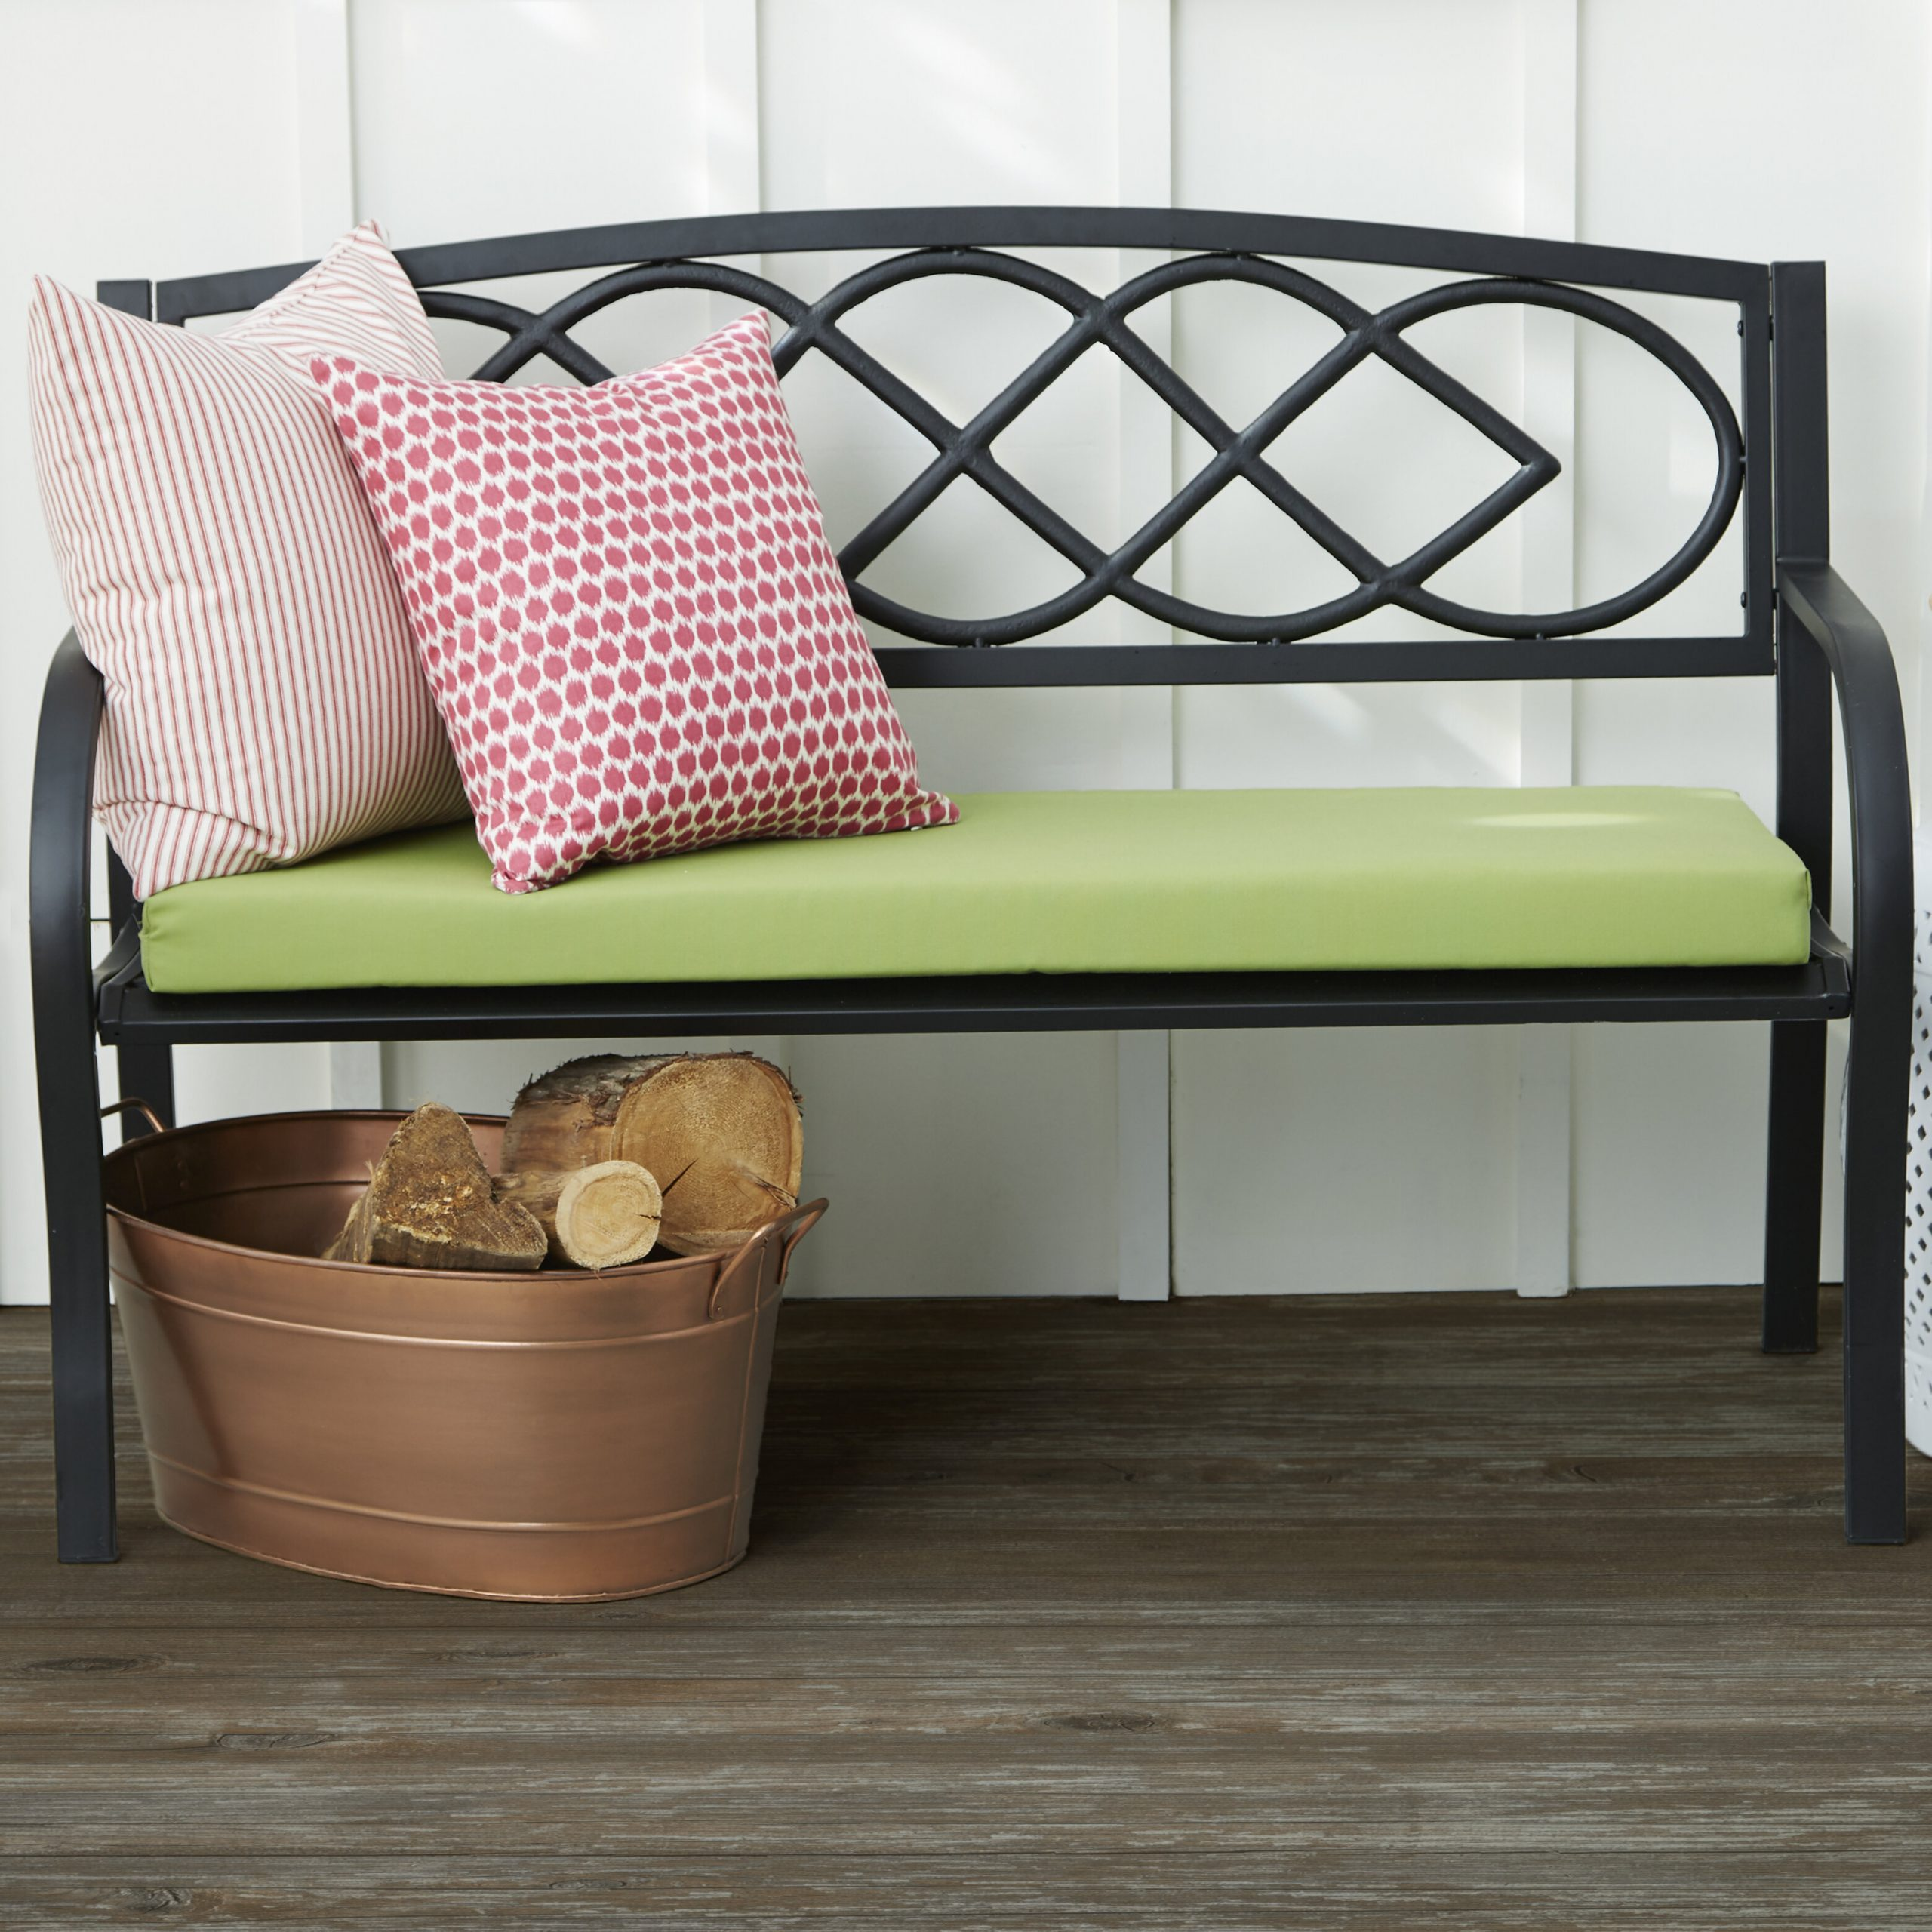 Featured Image of Celtic Knot Iron Garden Benches